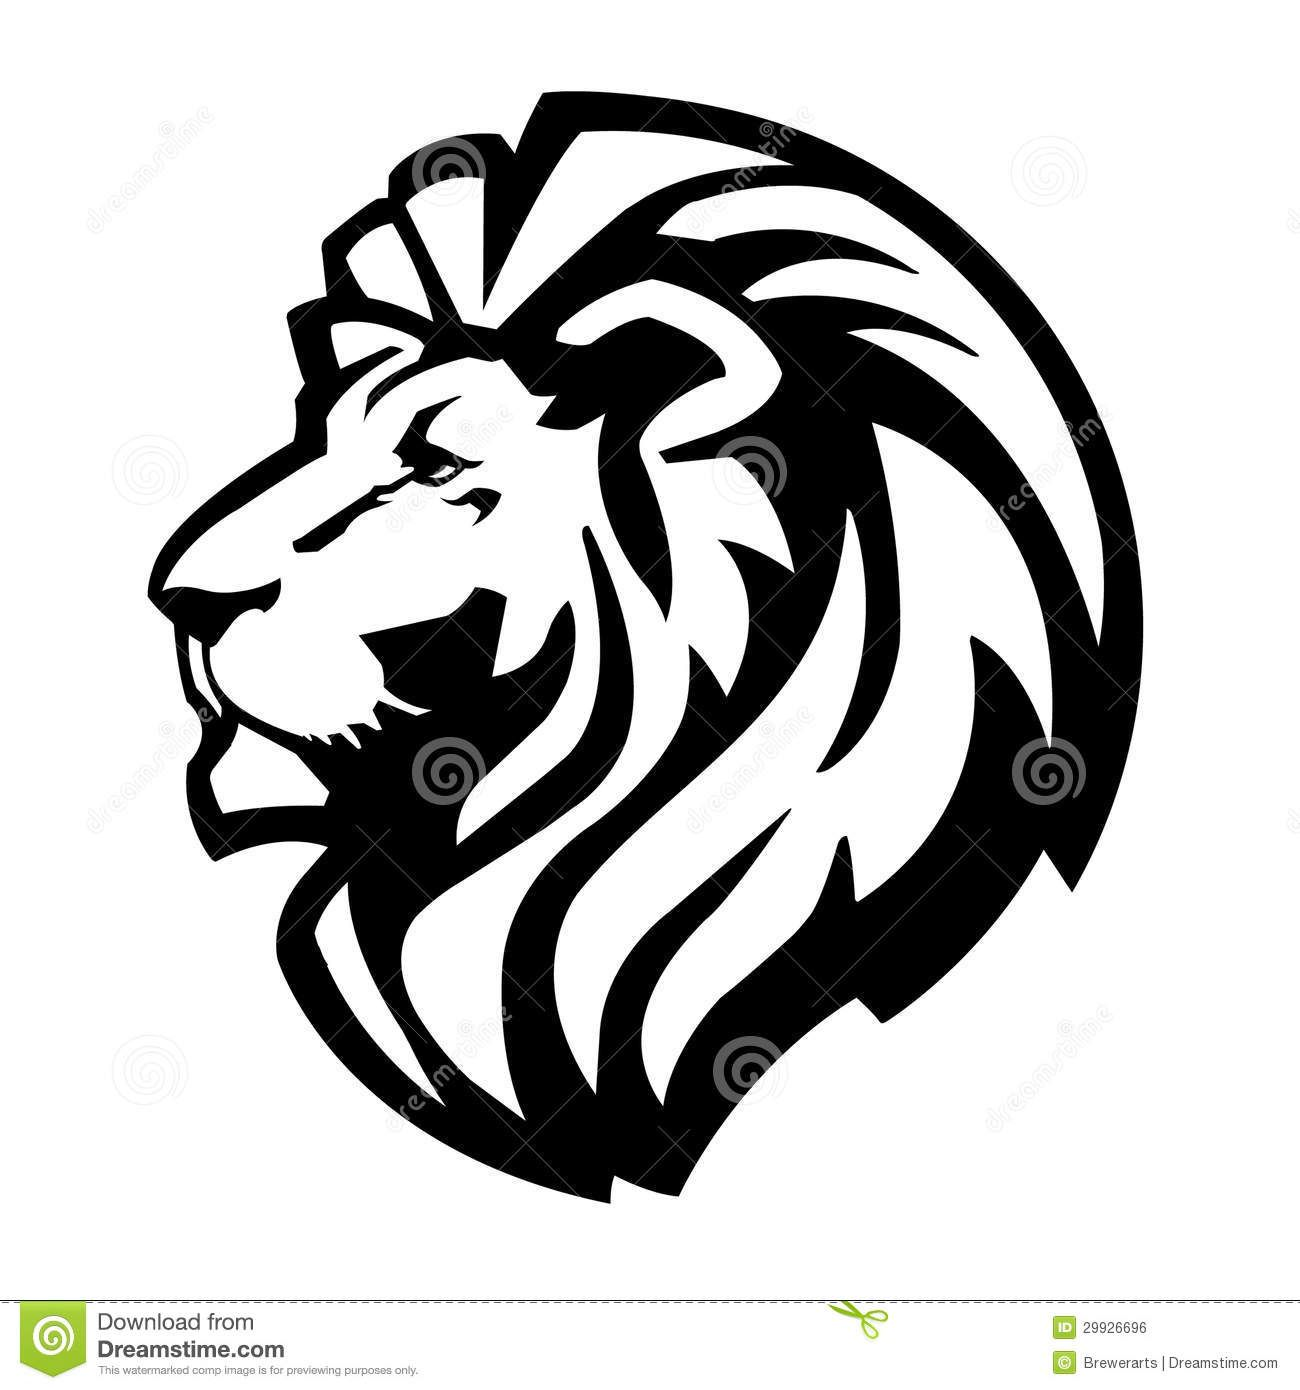 black and white lion of judah clip art.